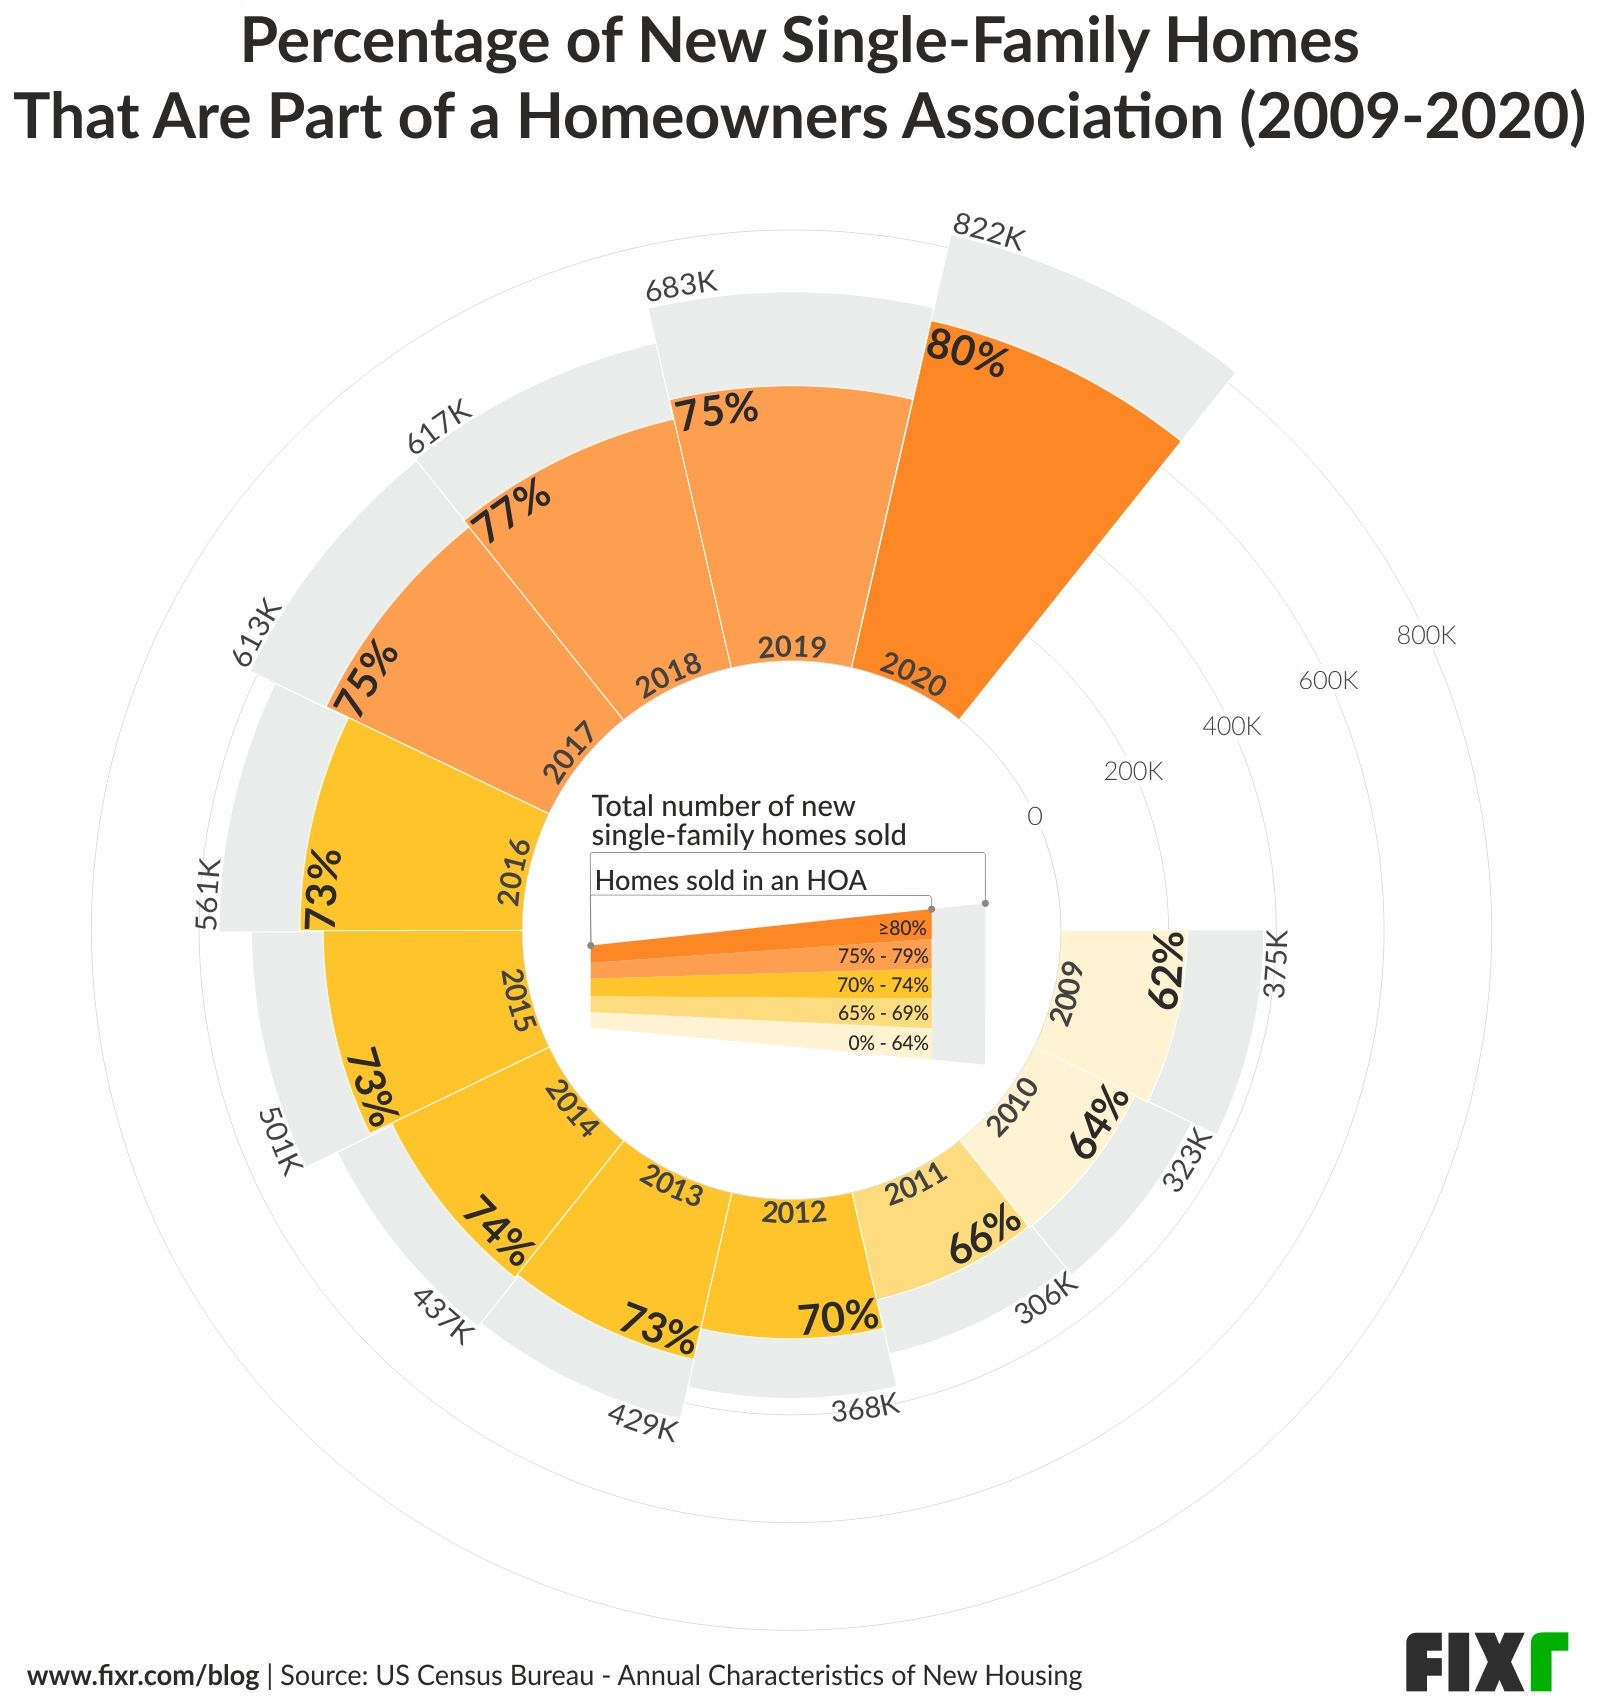 Increase of new single-family homes sold with membership in an HOA neighborhood (2009-2020)